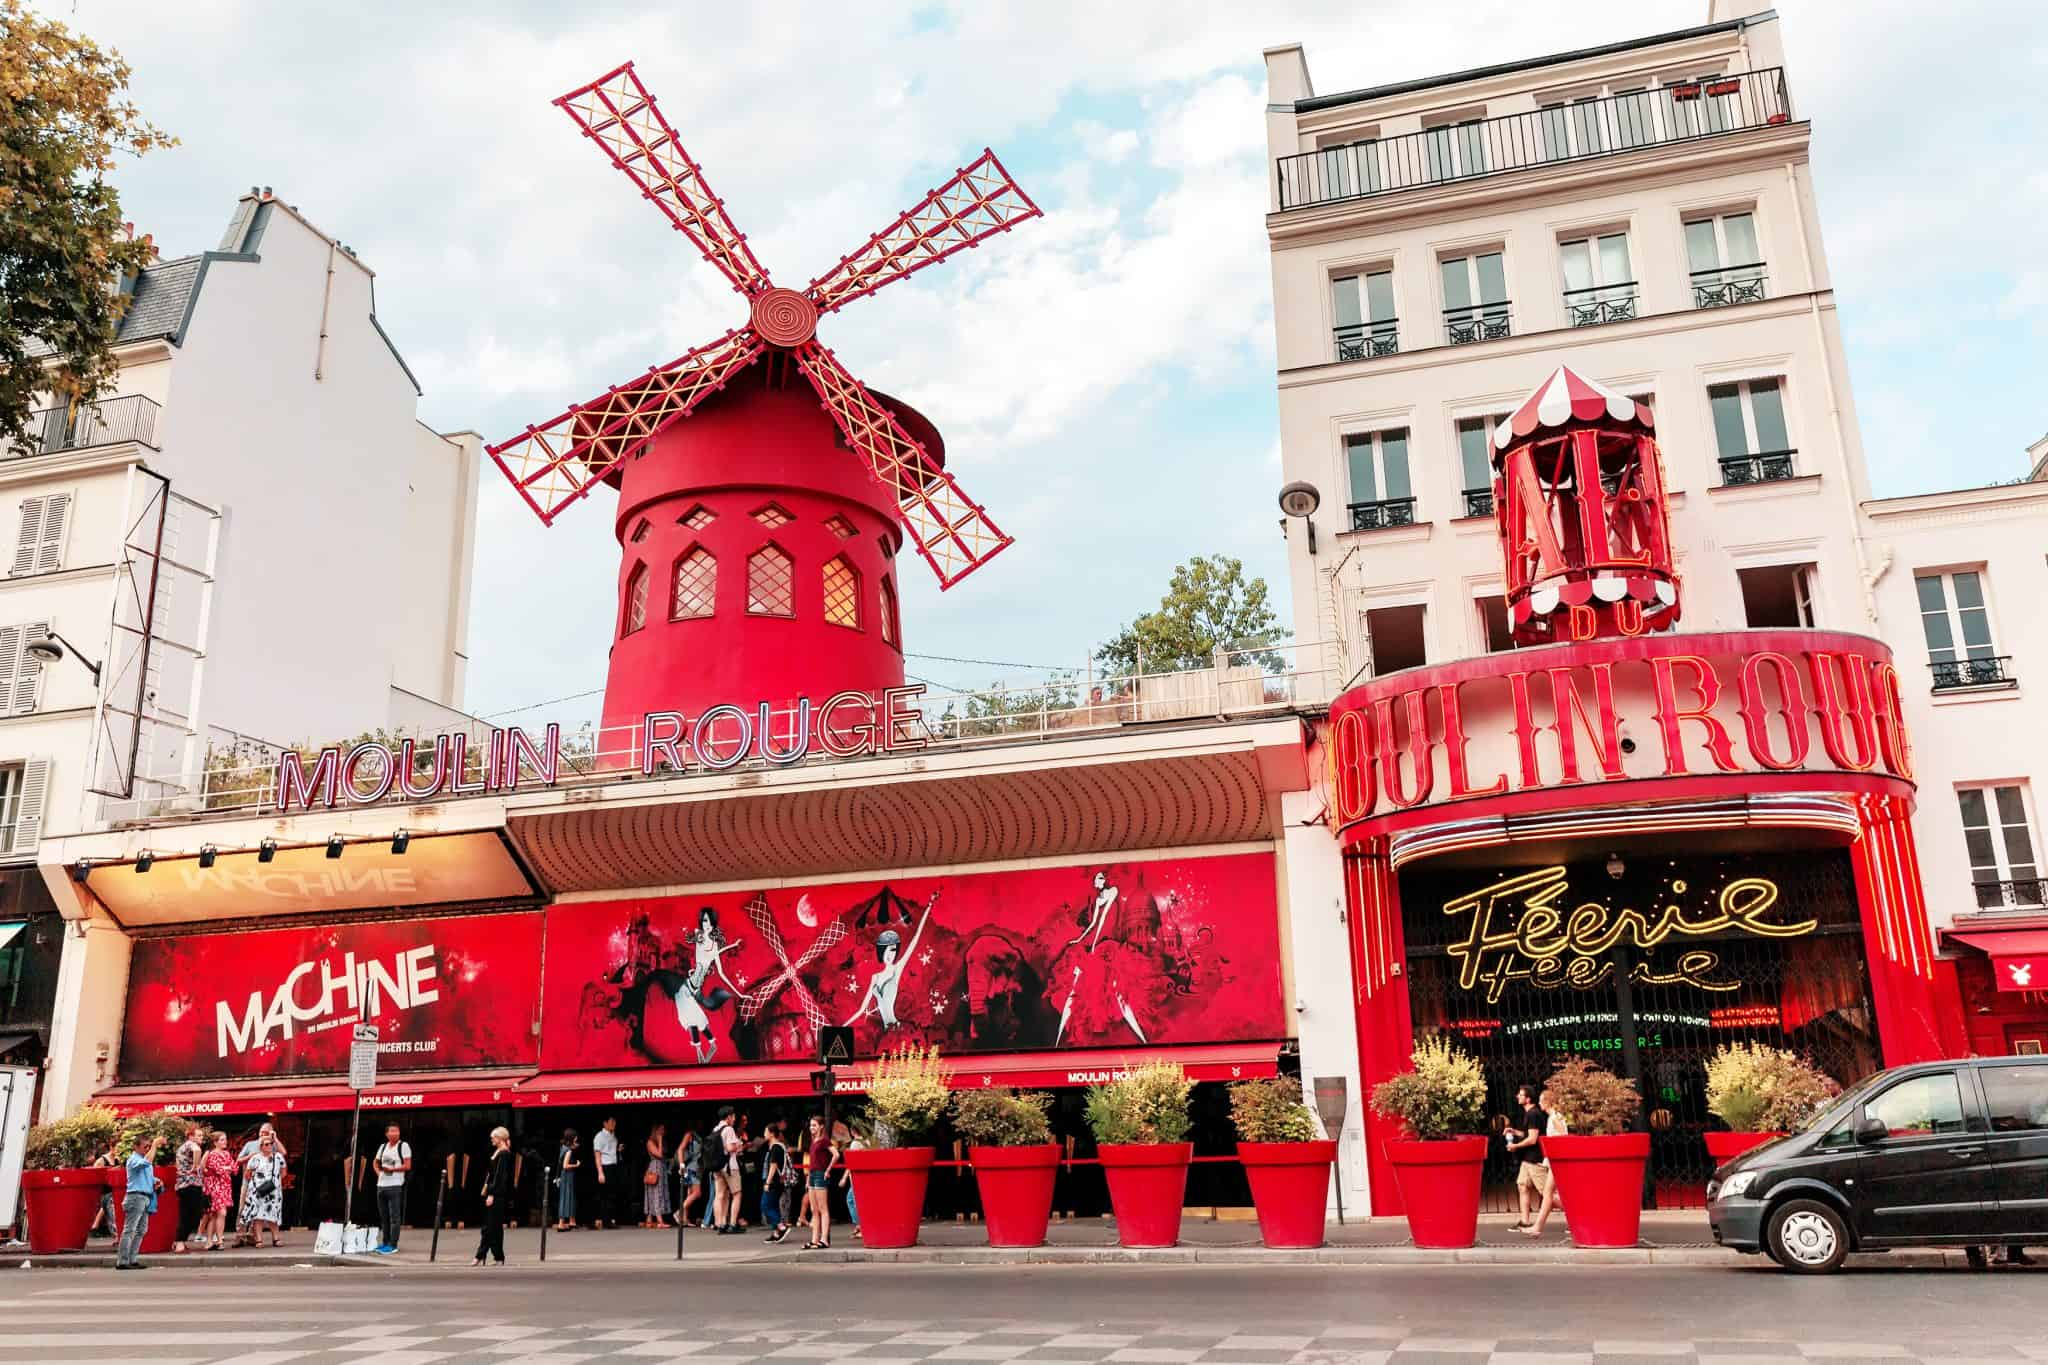 Moulin Rouge Exterior - 4 days in Paris what to do